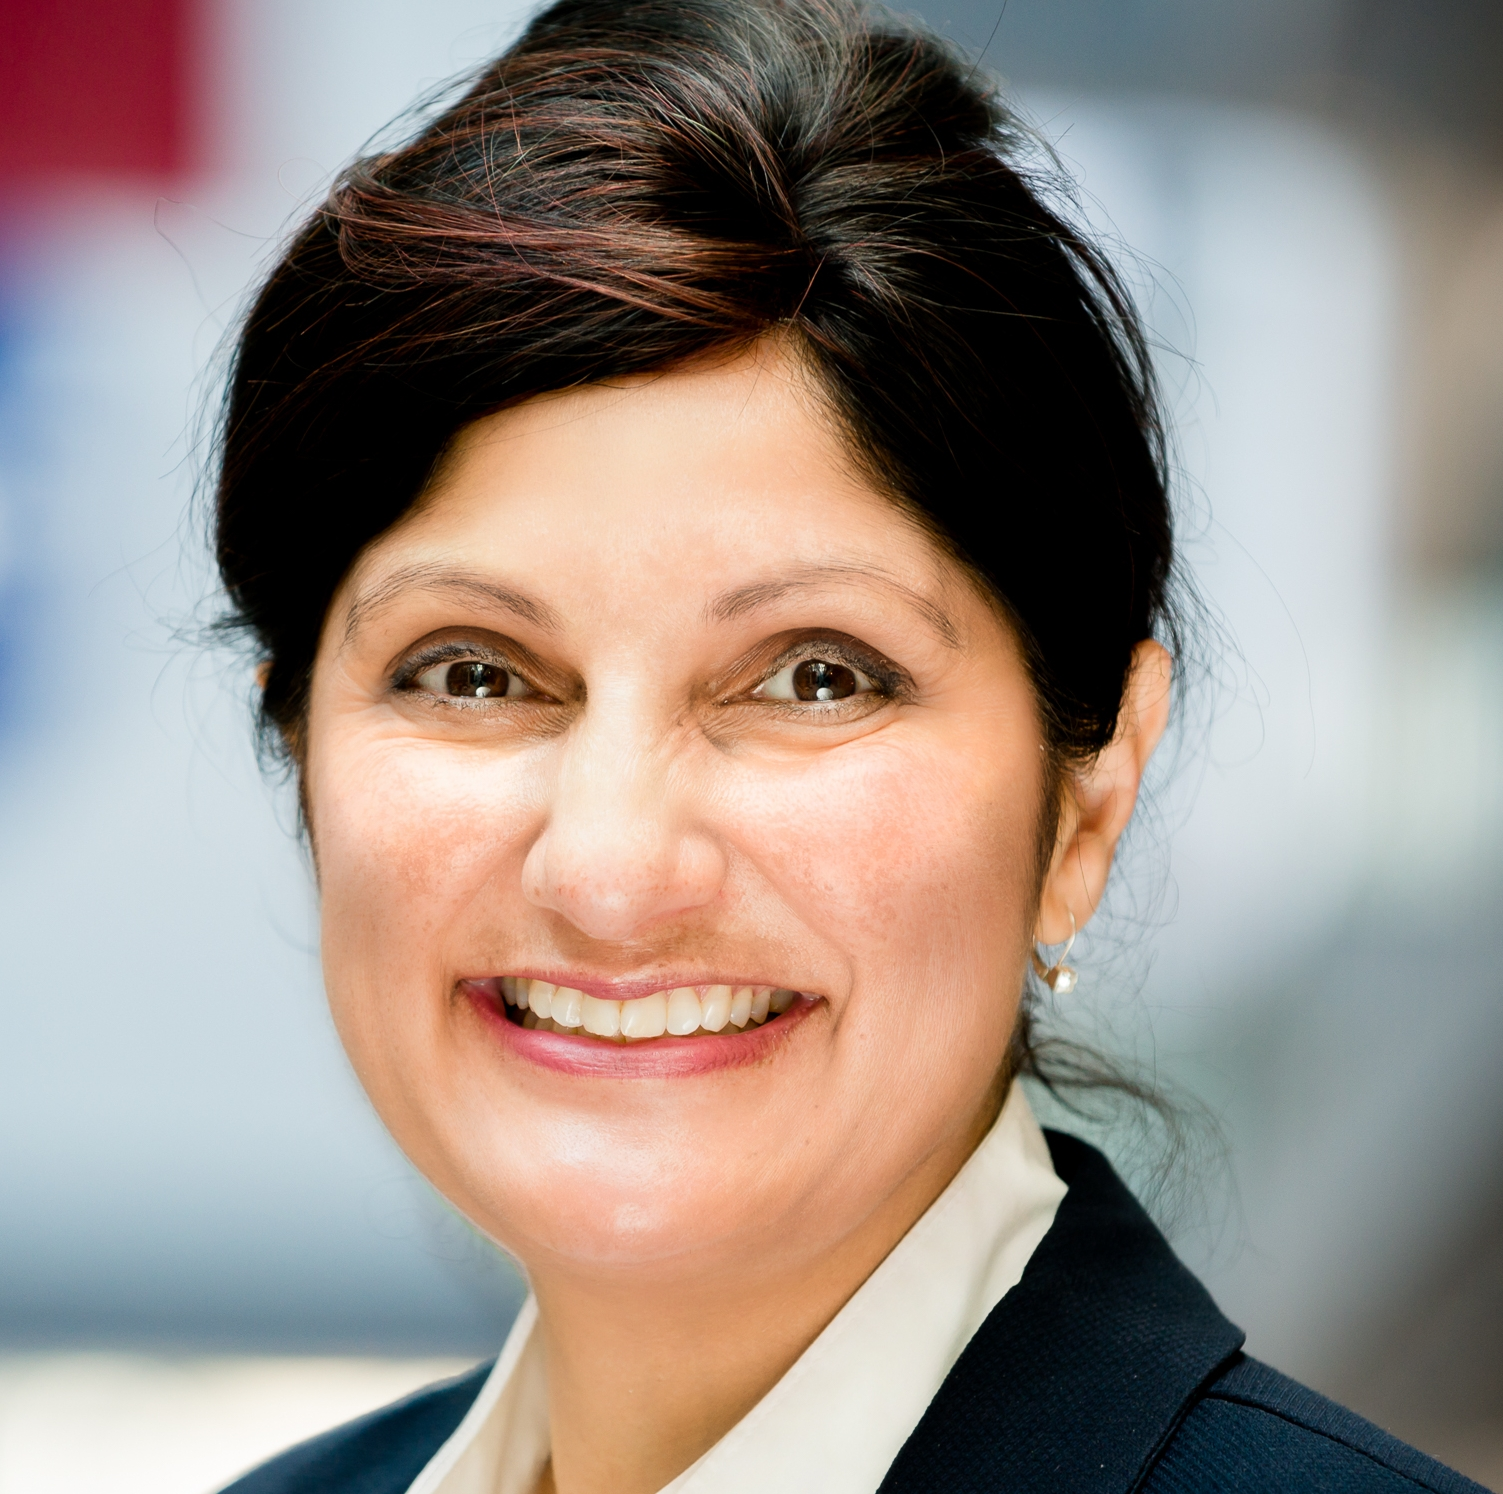 Sima Gandhi, Innovation Consultant, Founder, EIR, Facilitator - With many years of experience as an investor, founder and business partner, I am uniquely qualified innovation consultant. I thrive in complex and challenging environments, am passionate about using Lean Startup Approaches in enterprise environments to drive growth.I have worked with students to solopreneurs to corporate intrapreneurship teams building ideas and success with proven 'fail fast' approaches and techniques.